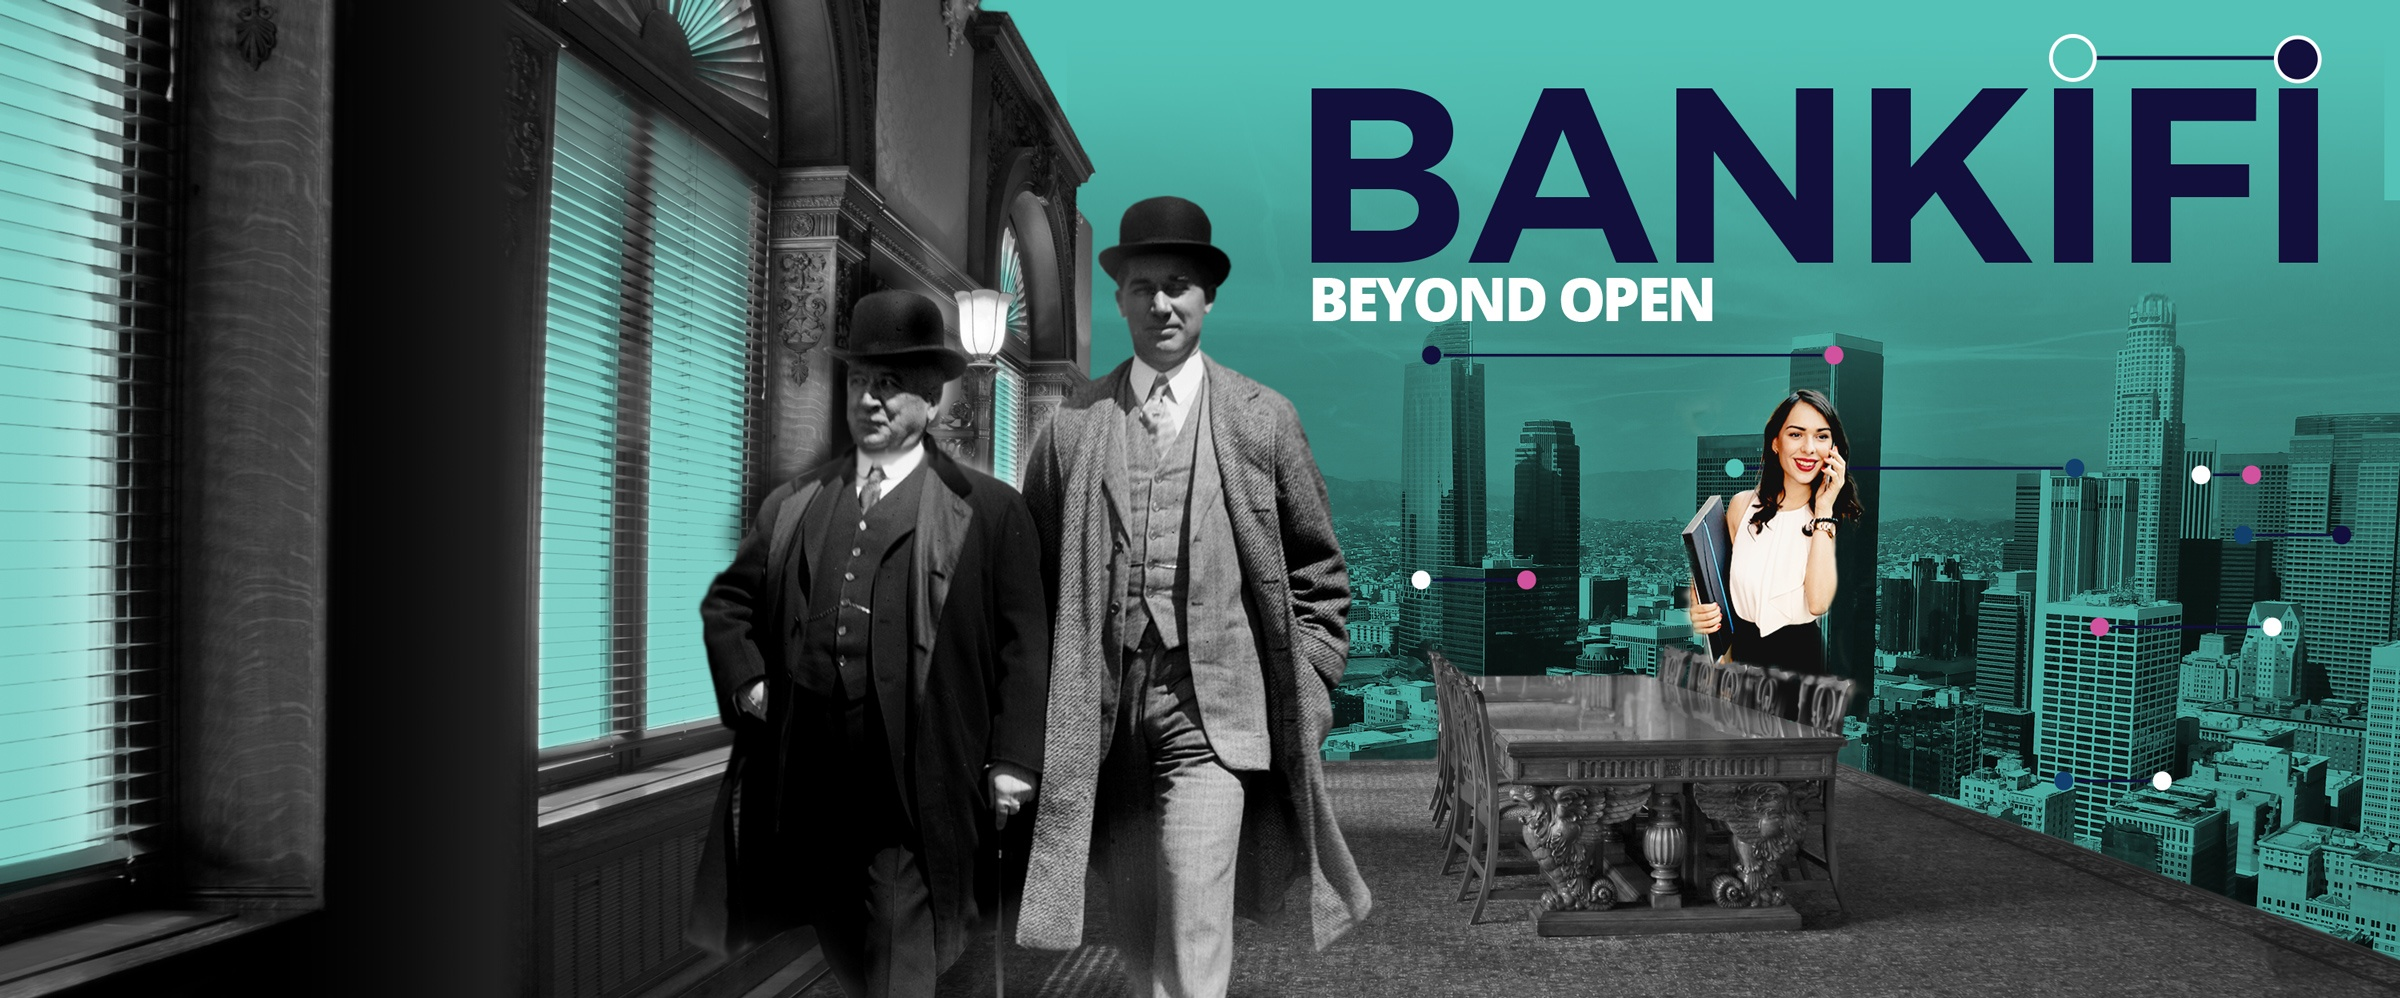 Press Release: Newly launched BankiFi takes banks and its business customers 'Beyond Open'